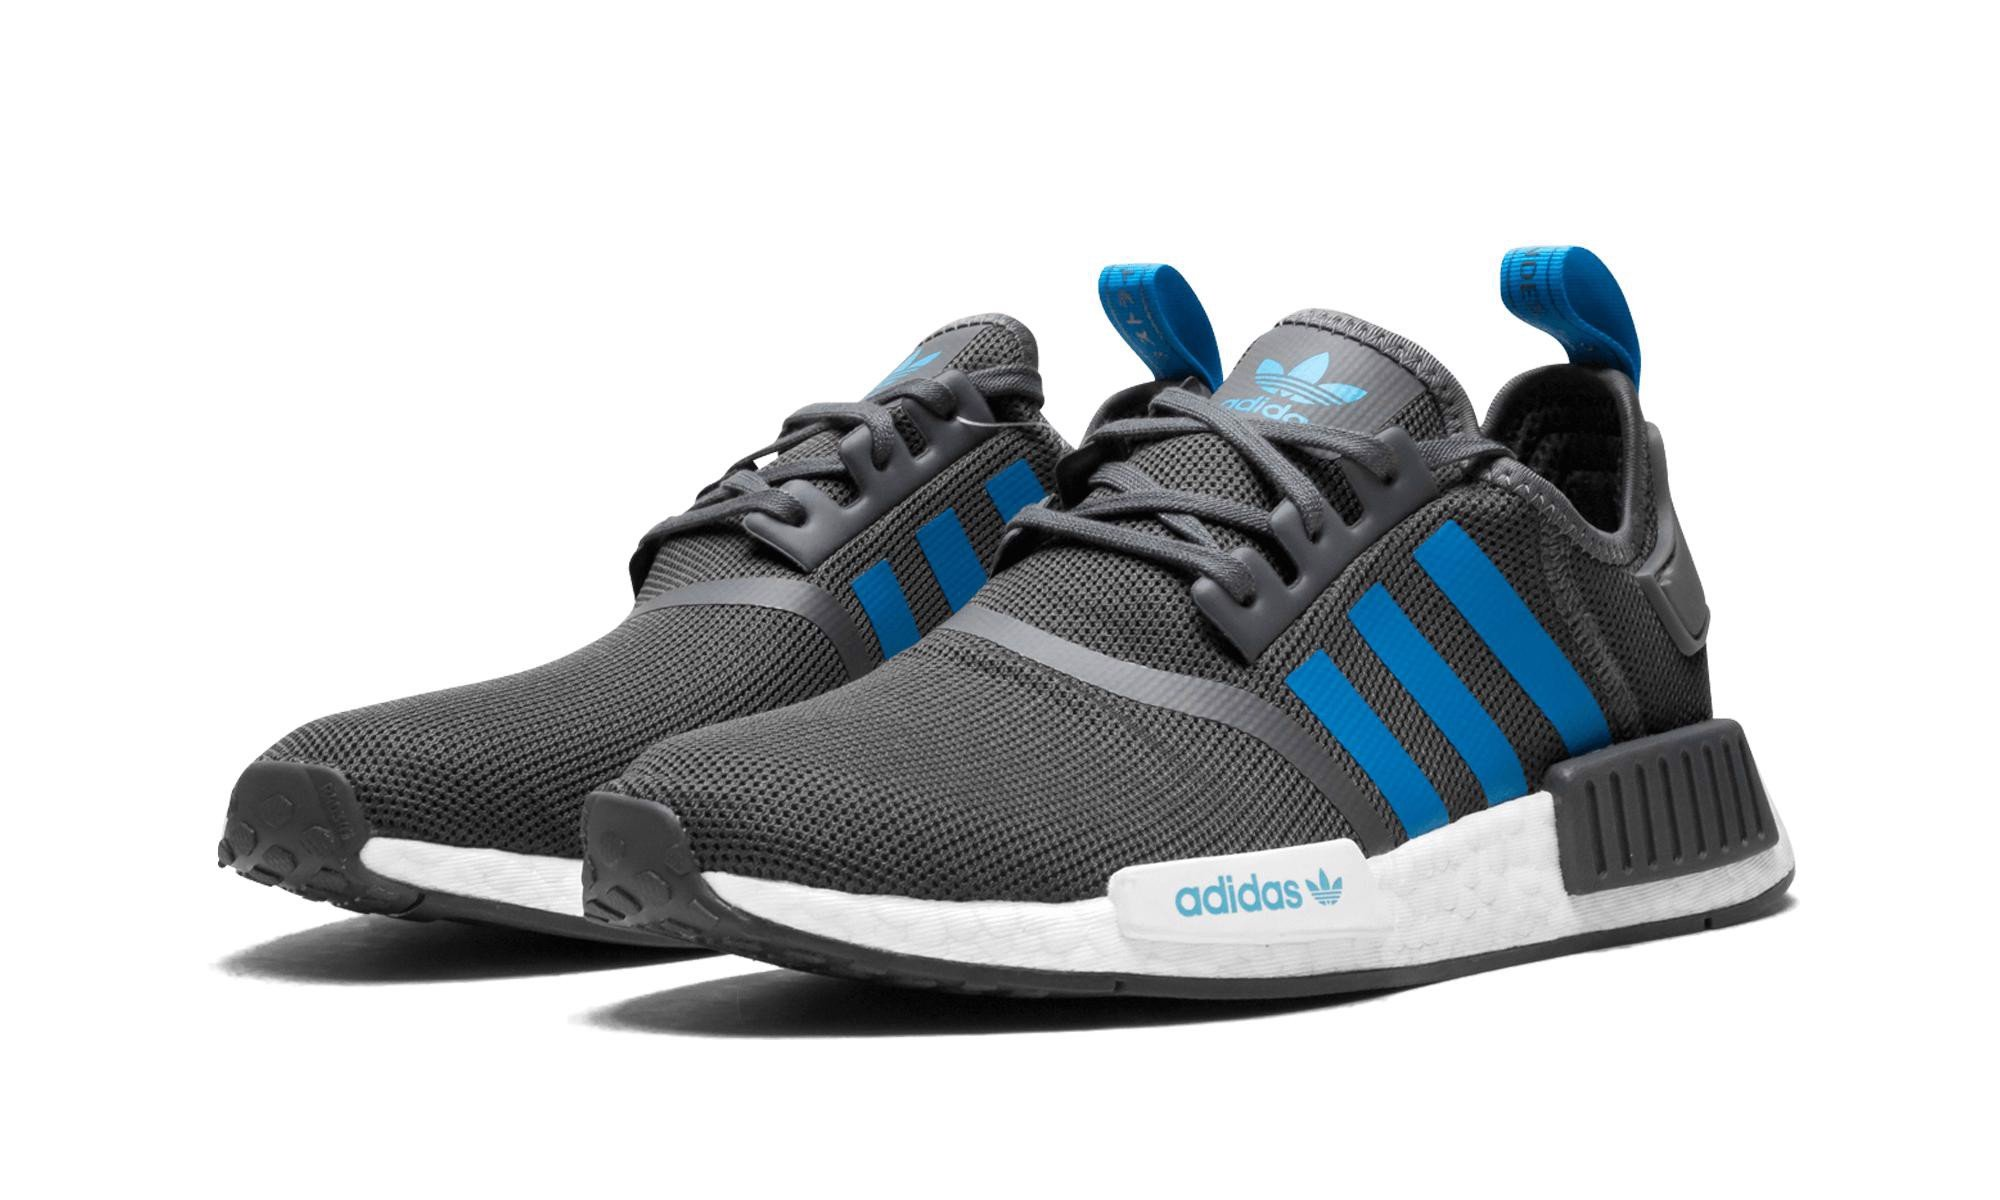 detailed look f8da8 aa807 [D96688] K ADIDAS NMD R1 GREY FIVE BRIGHT BLUE